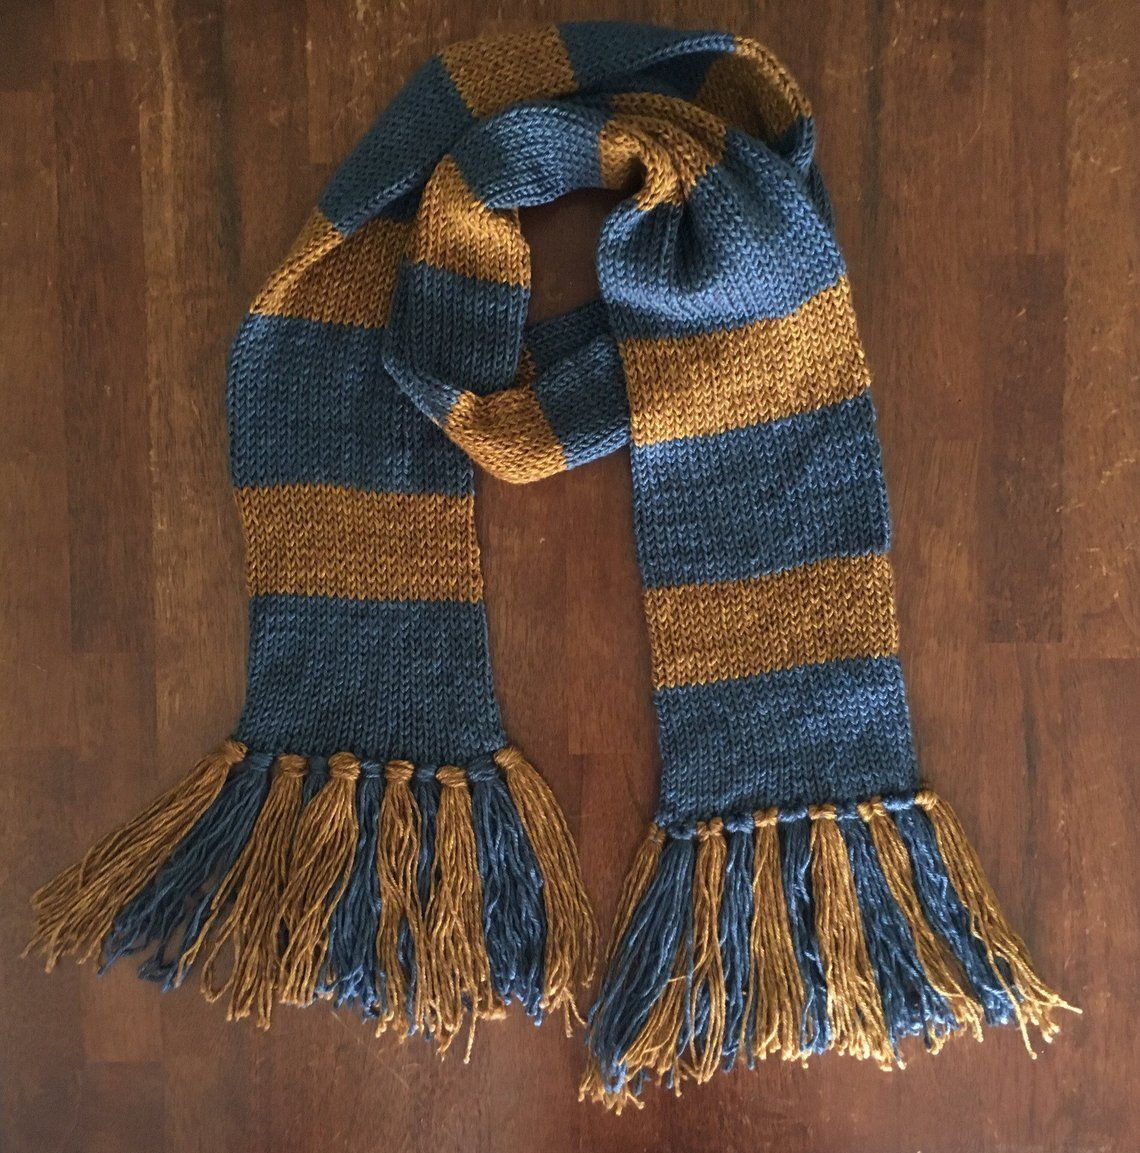 Image 0 Harry Potter Outfits Ravenclaw Scarf Ravenclaw Outfit